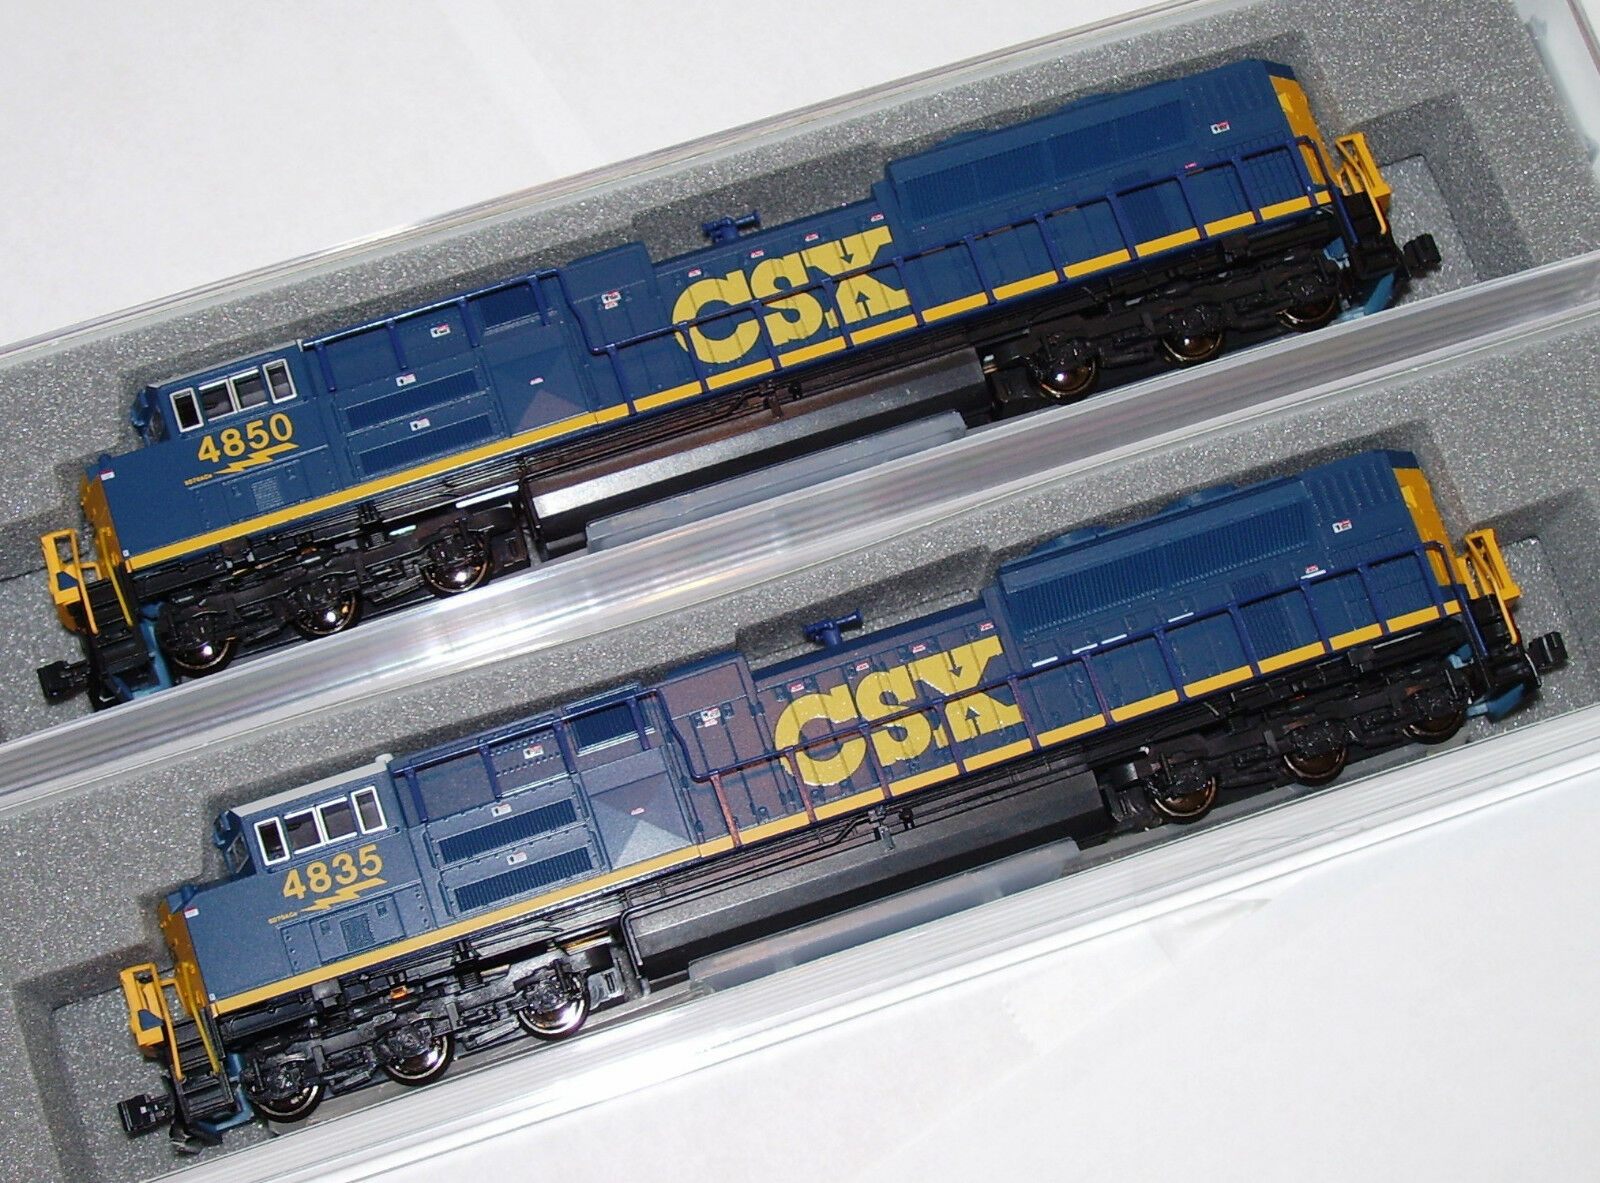 KATO 1768436 + 1768437 2 LOCO N SCALE SET SD70ACe CSX   4835 + 4850 DARK FUTURE